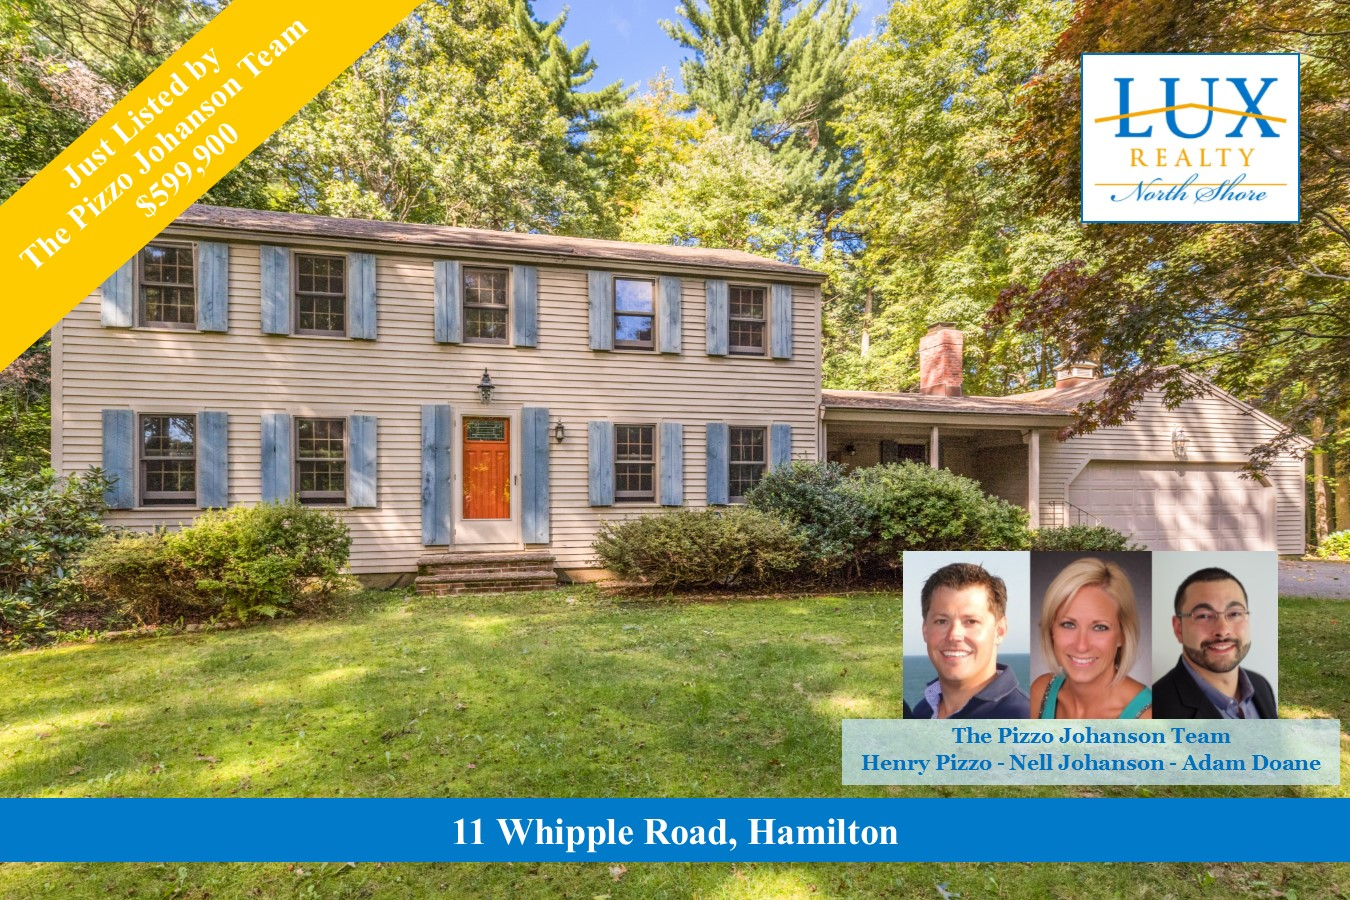 Hamilton MA Homes for Sale LUX Realty